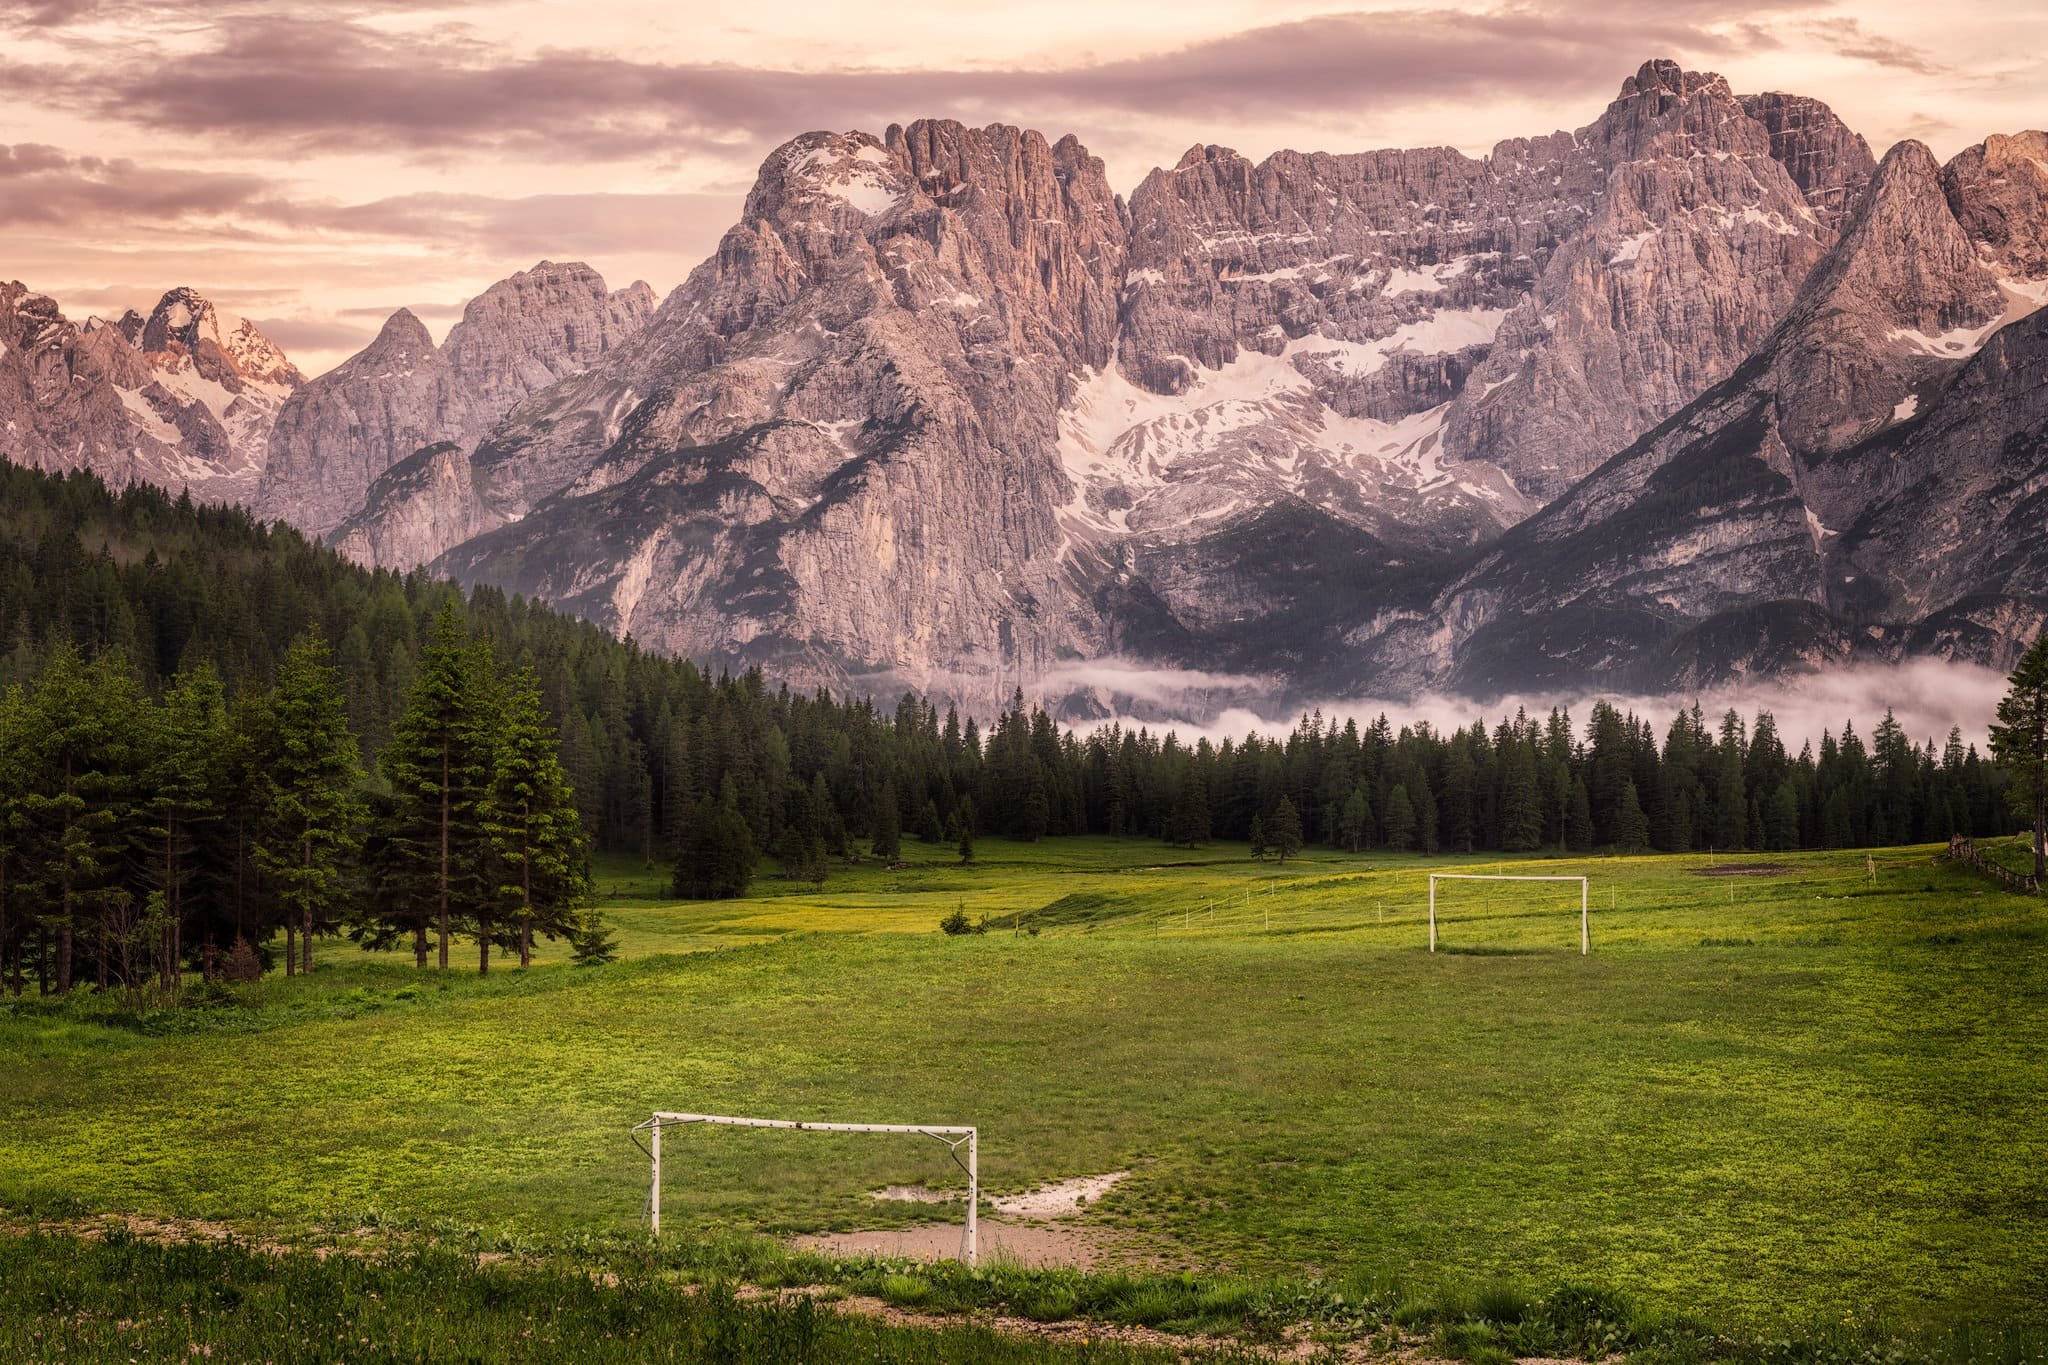 Misurina in the Dolomites – an evening view of Civetta Mountain and… a football pitch!